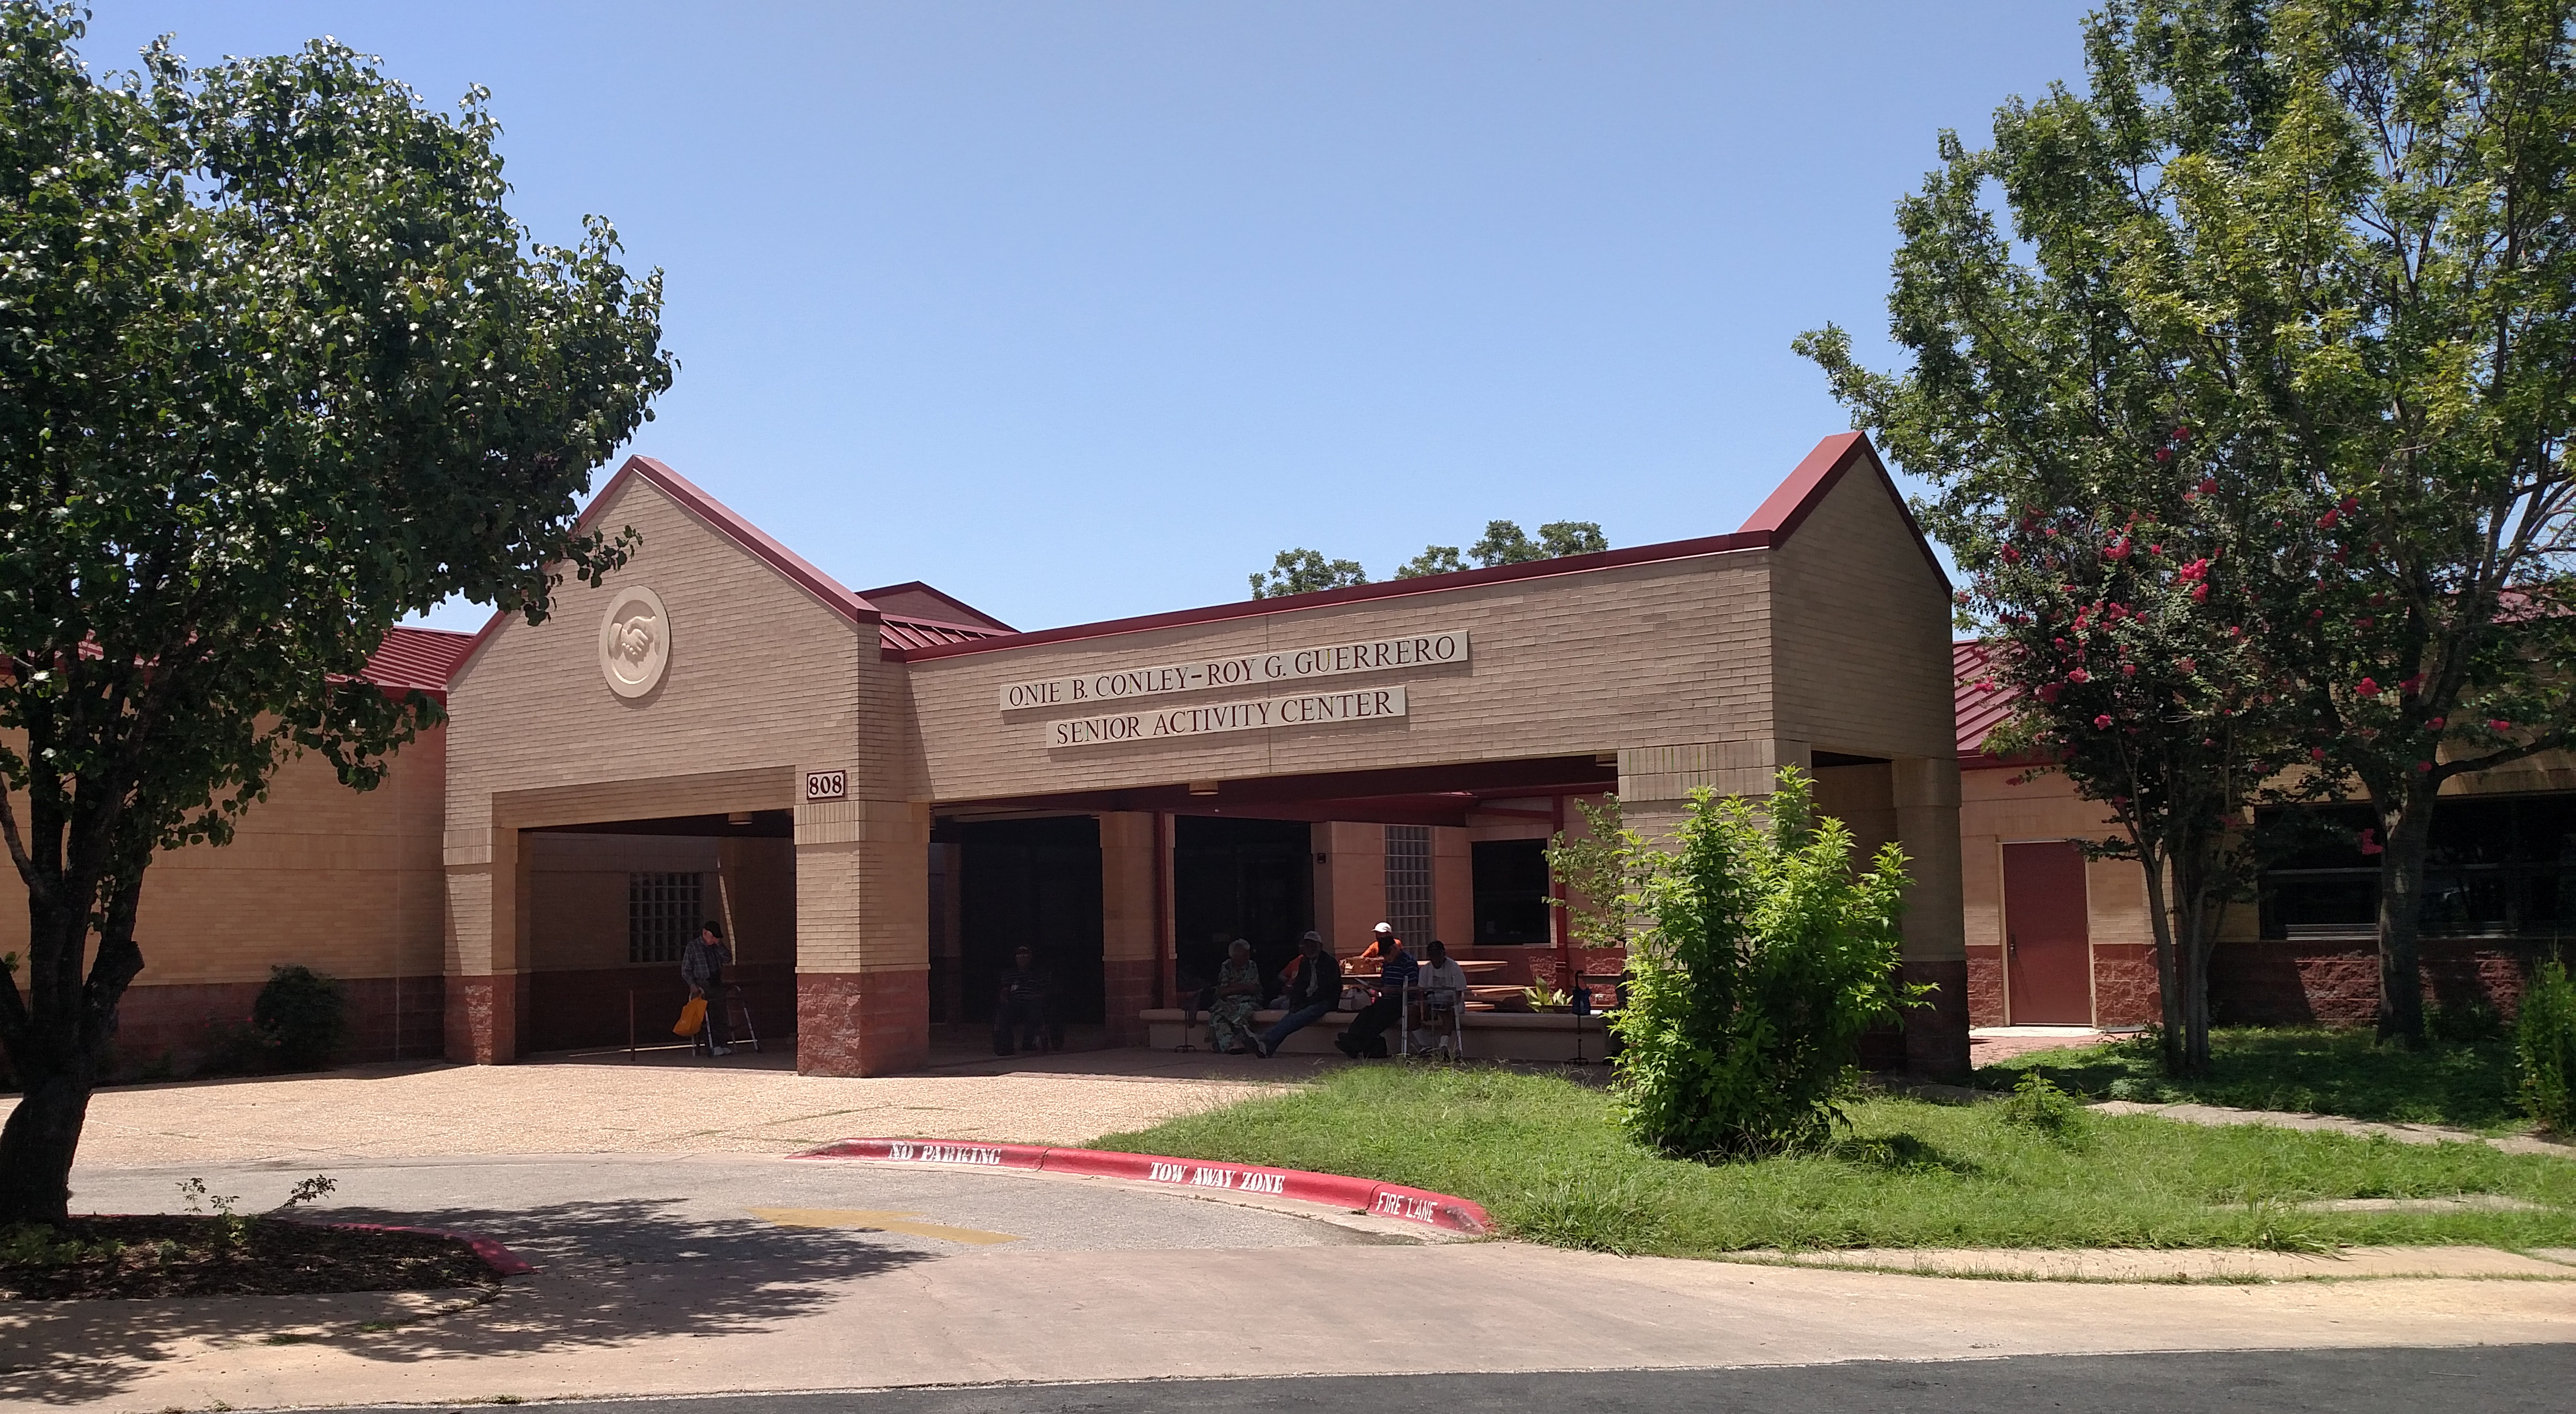 Conley Guerrero Senior Center